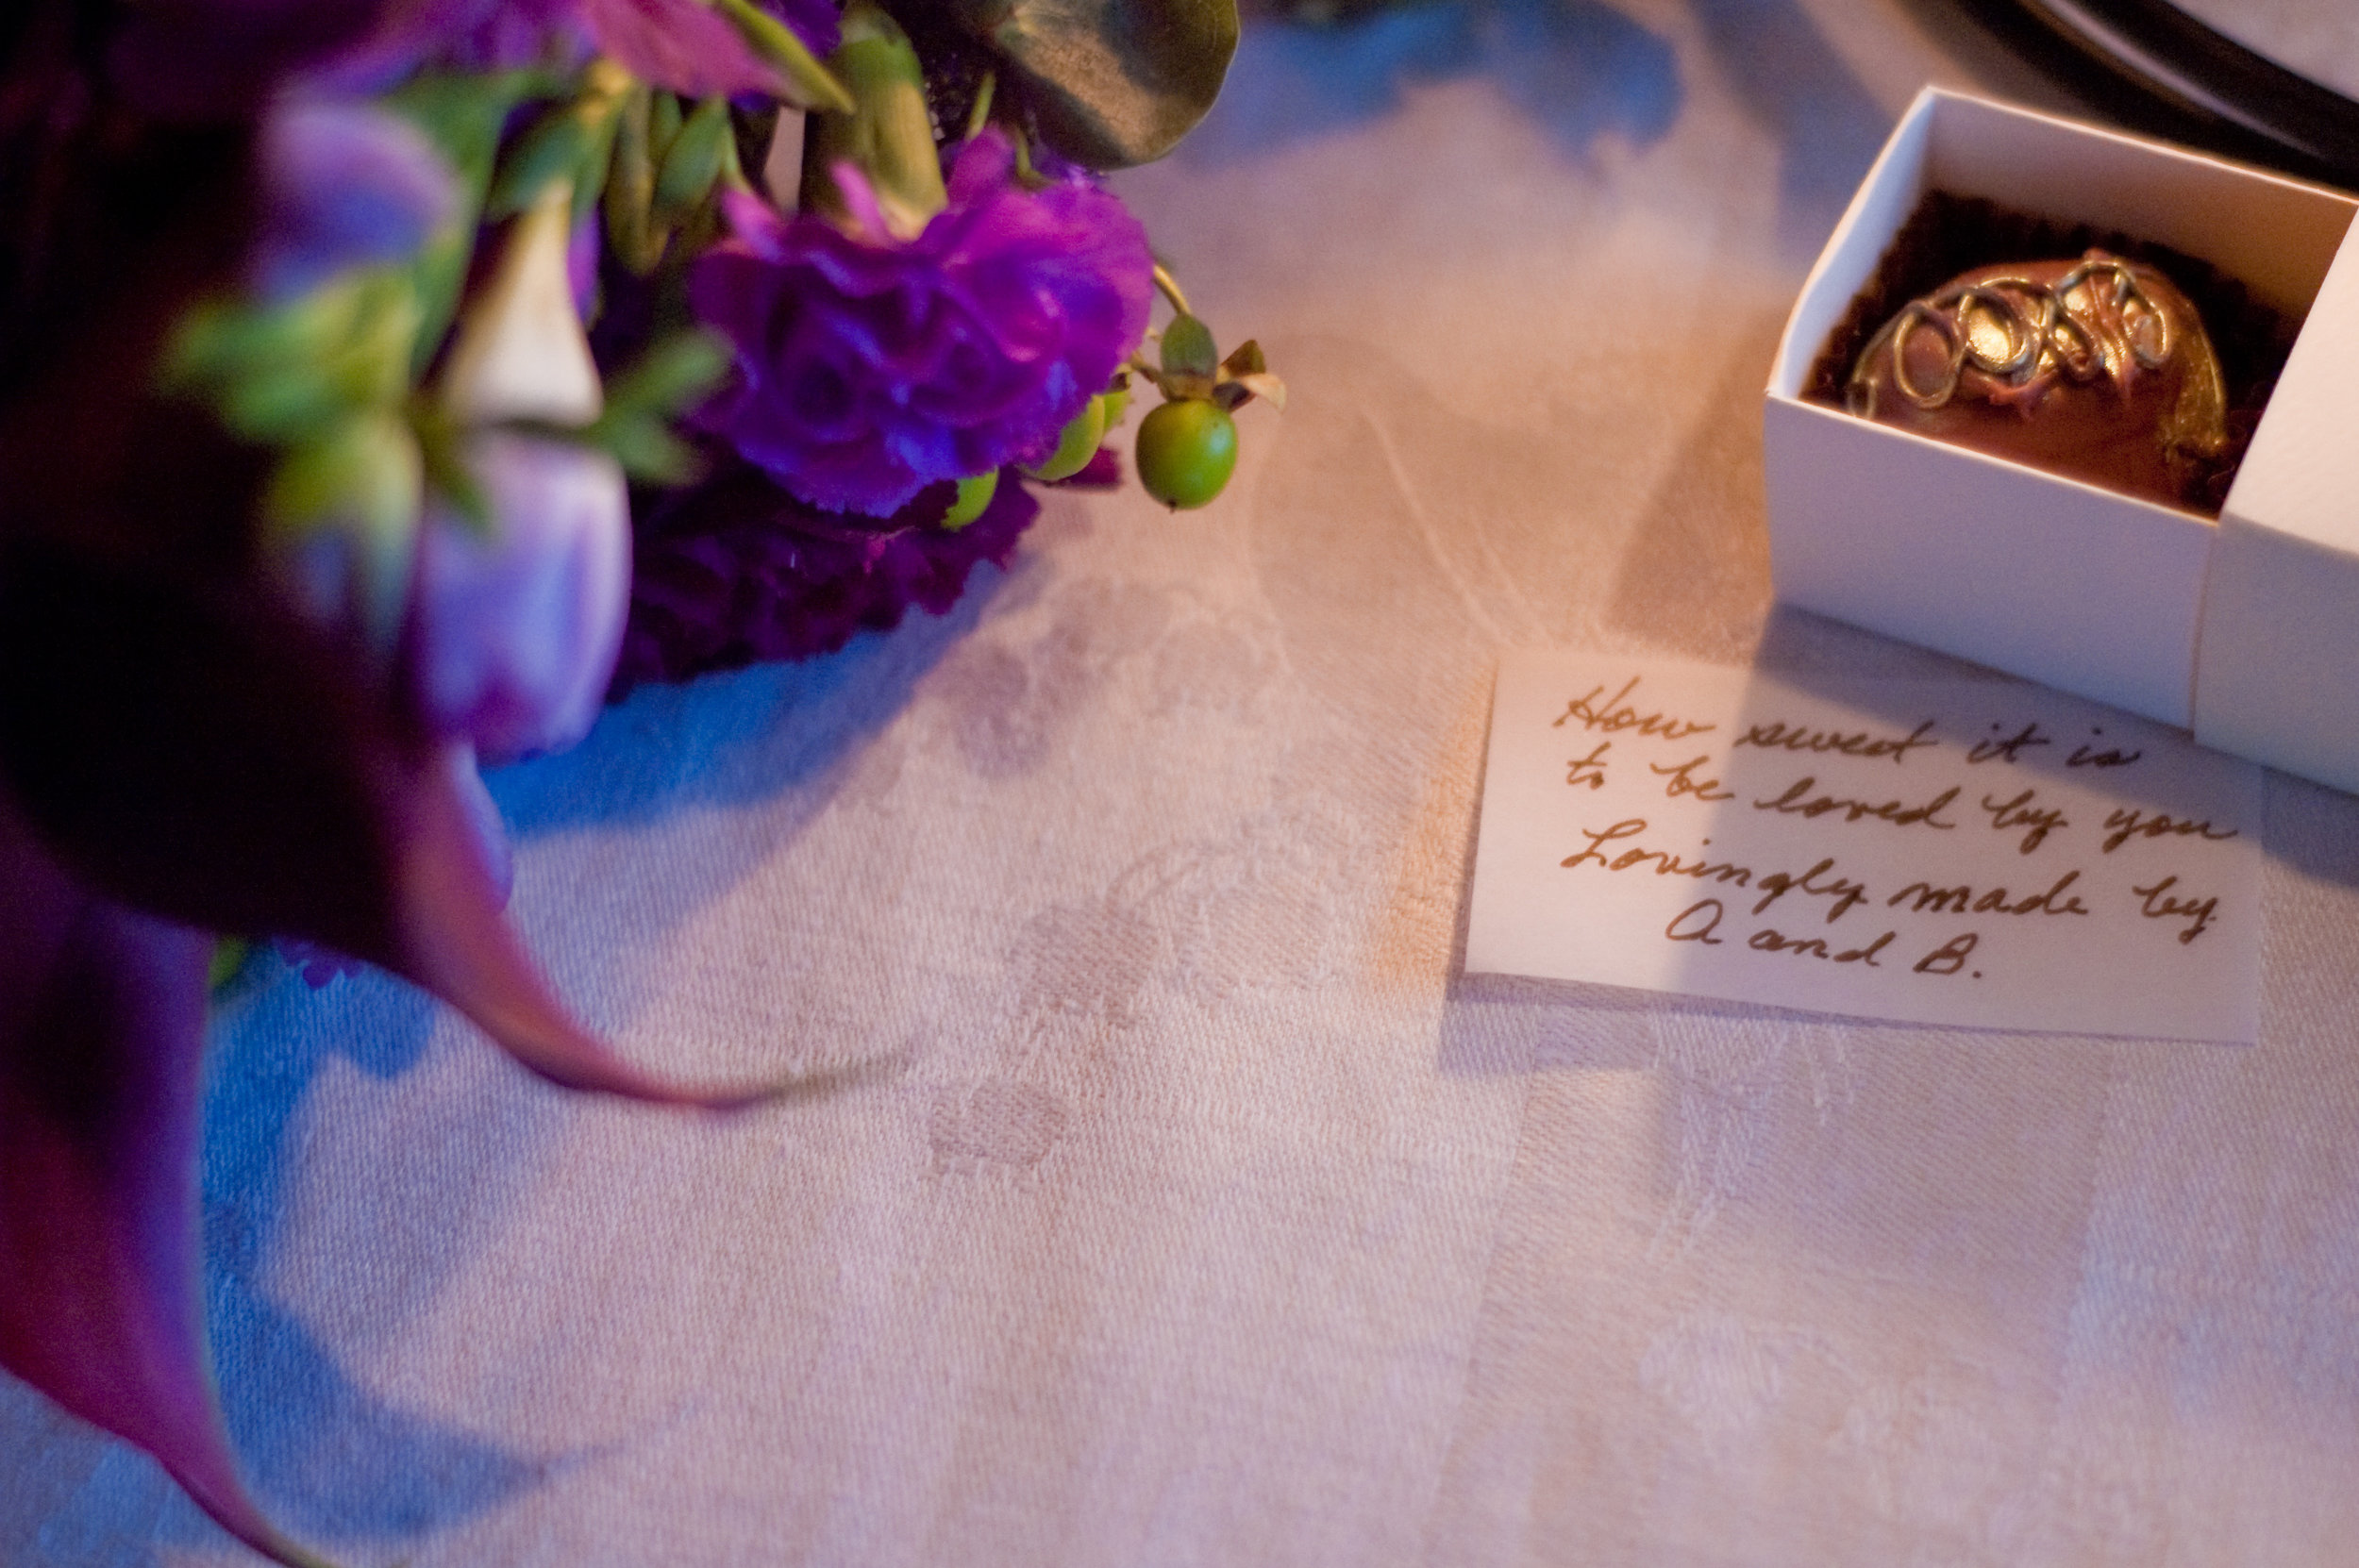 For Amanda's wedding, she and her husband made truffles and included a note handwritten by her grandmother.   Photography by Piper Moore.